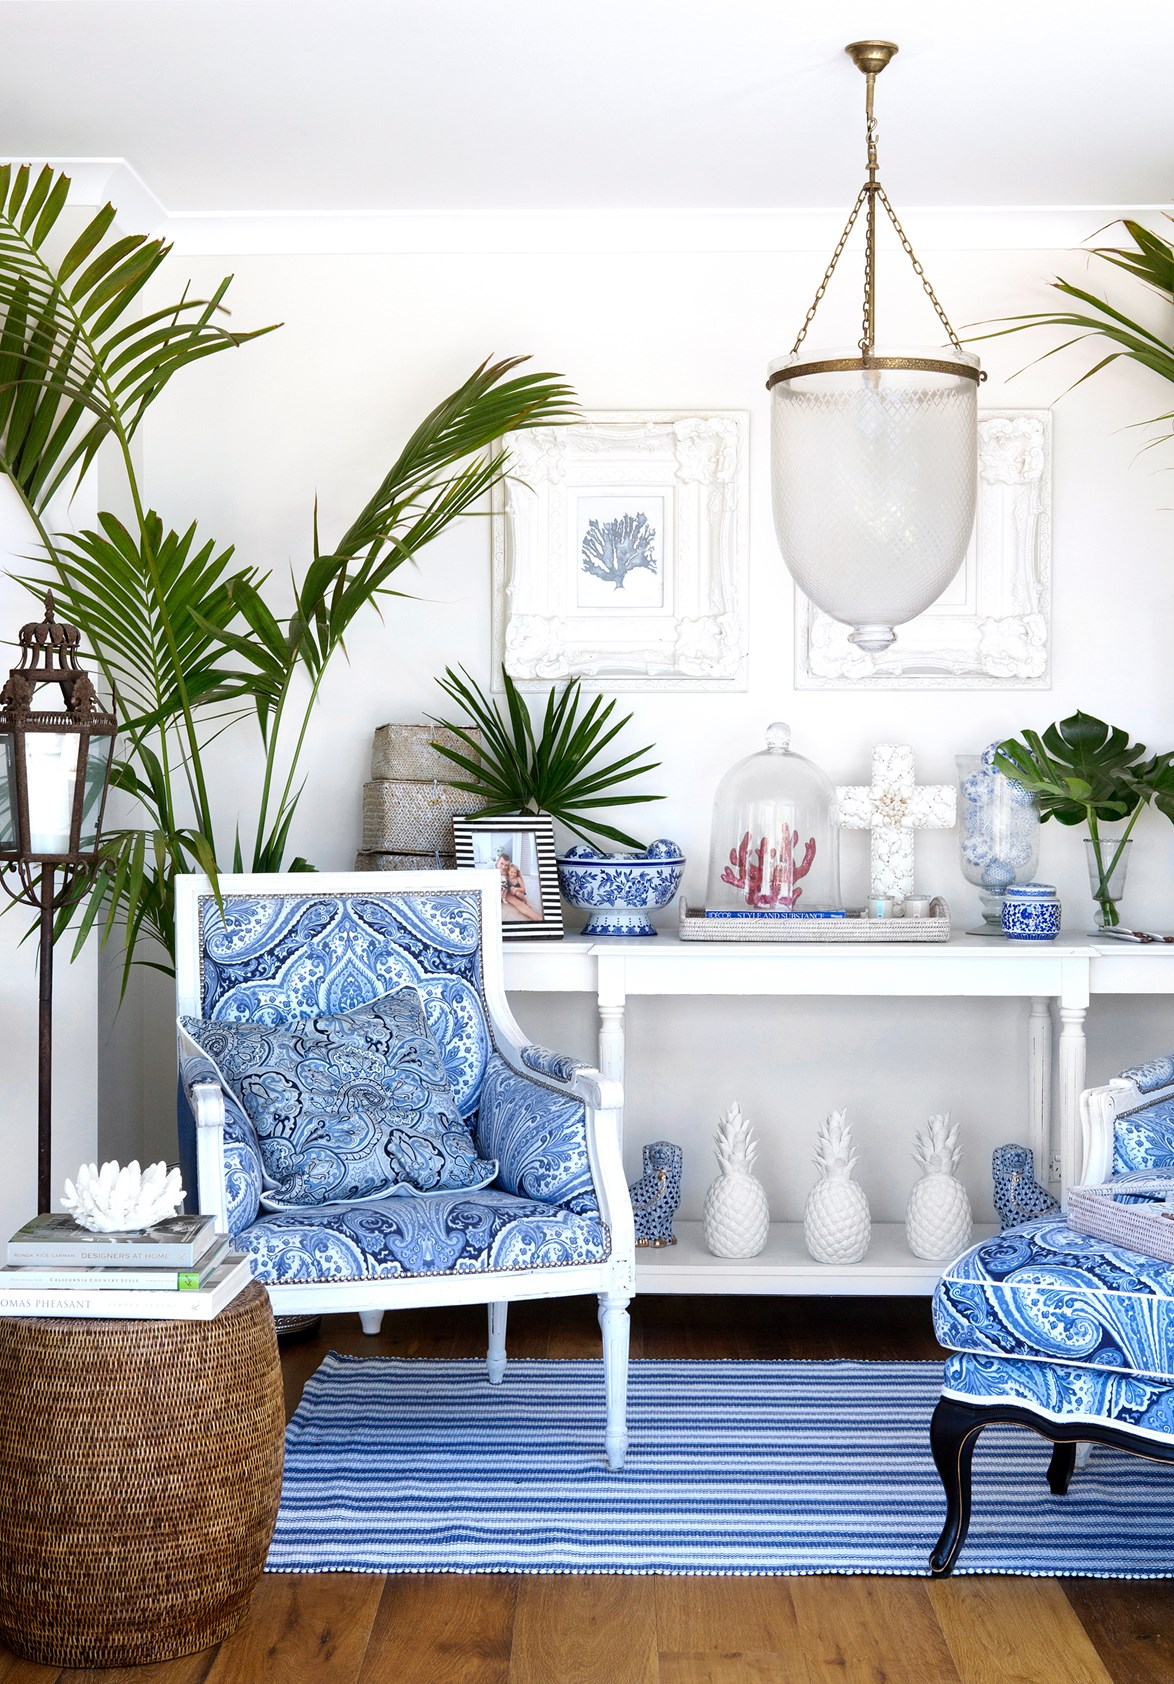 A blue and white colour palette is fresh and inviting, while leafy indoor plants liven up the space. *Photo: Angelita Bonettie*